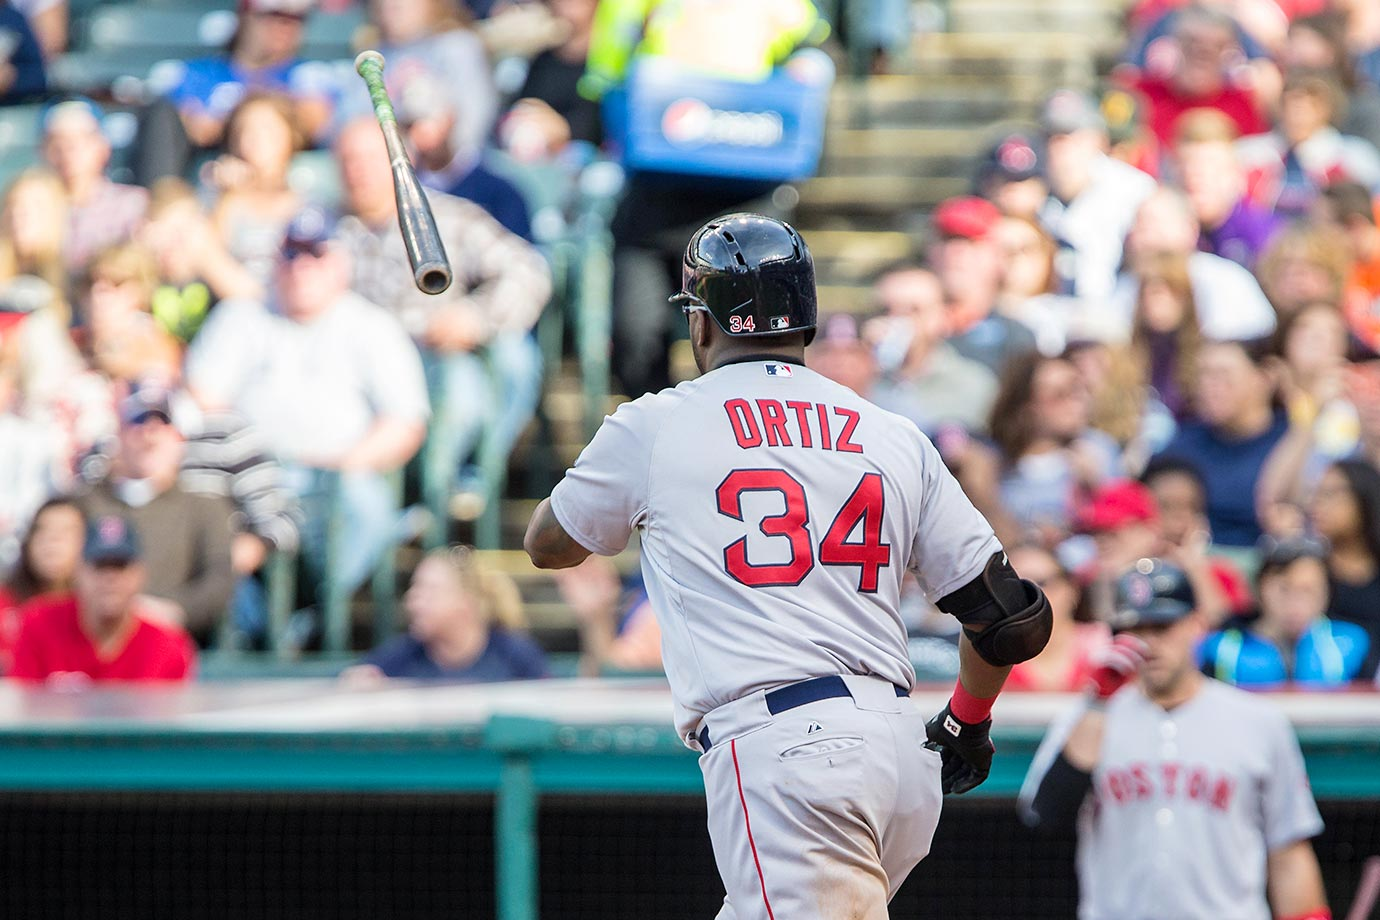 David Ortiz of the Boston Red Sox flips his bat toward the dugout after drawing a walk against the Cleveland Indians.